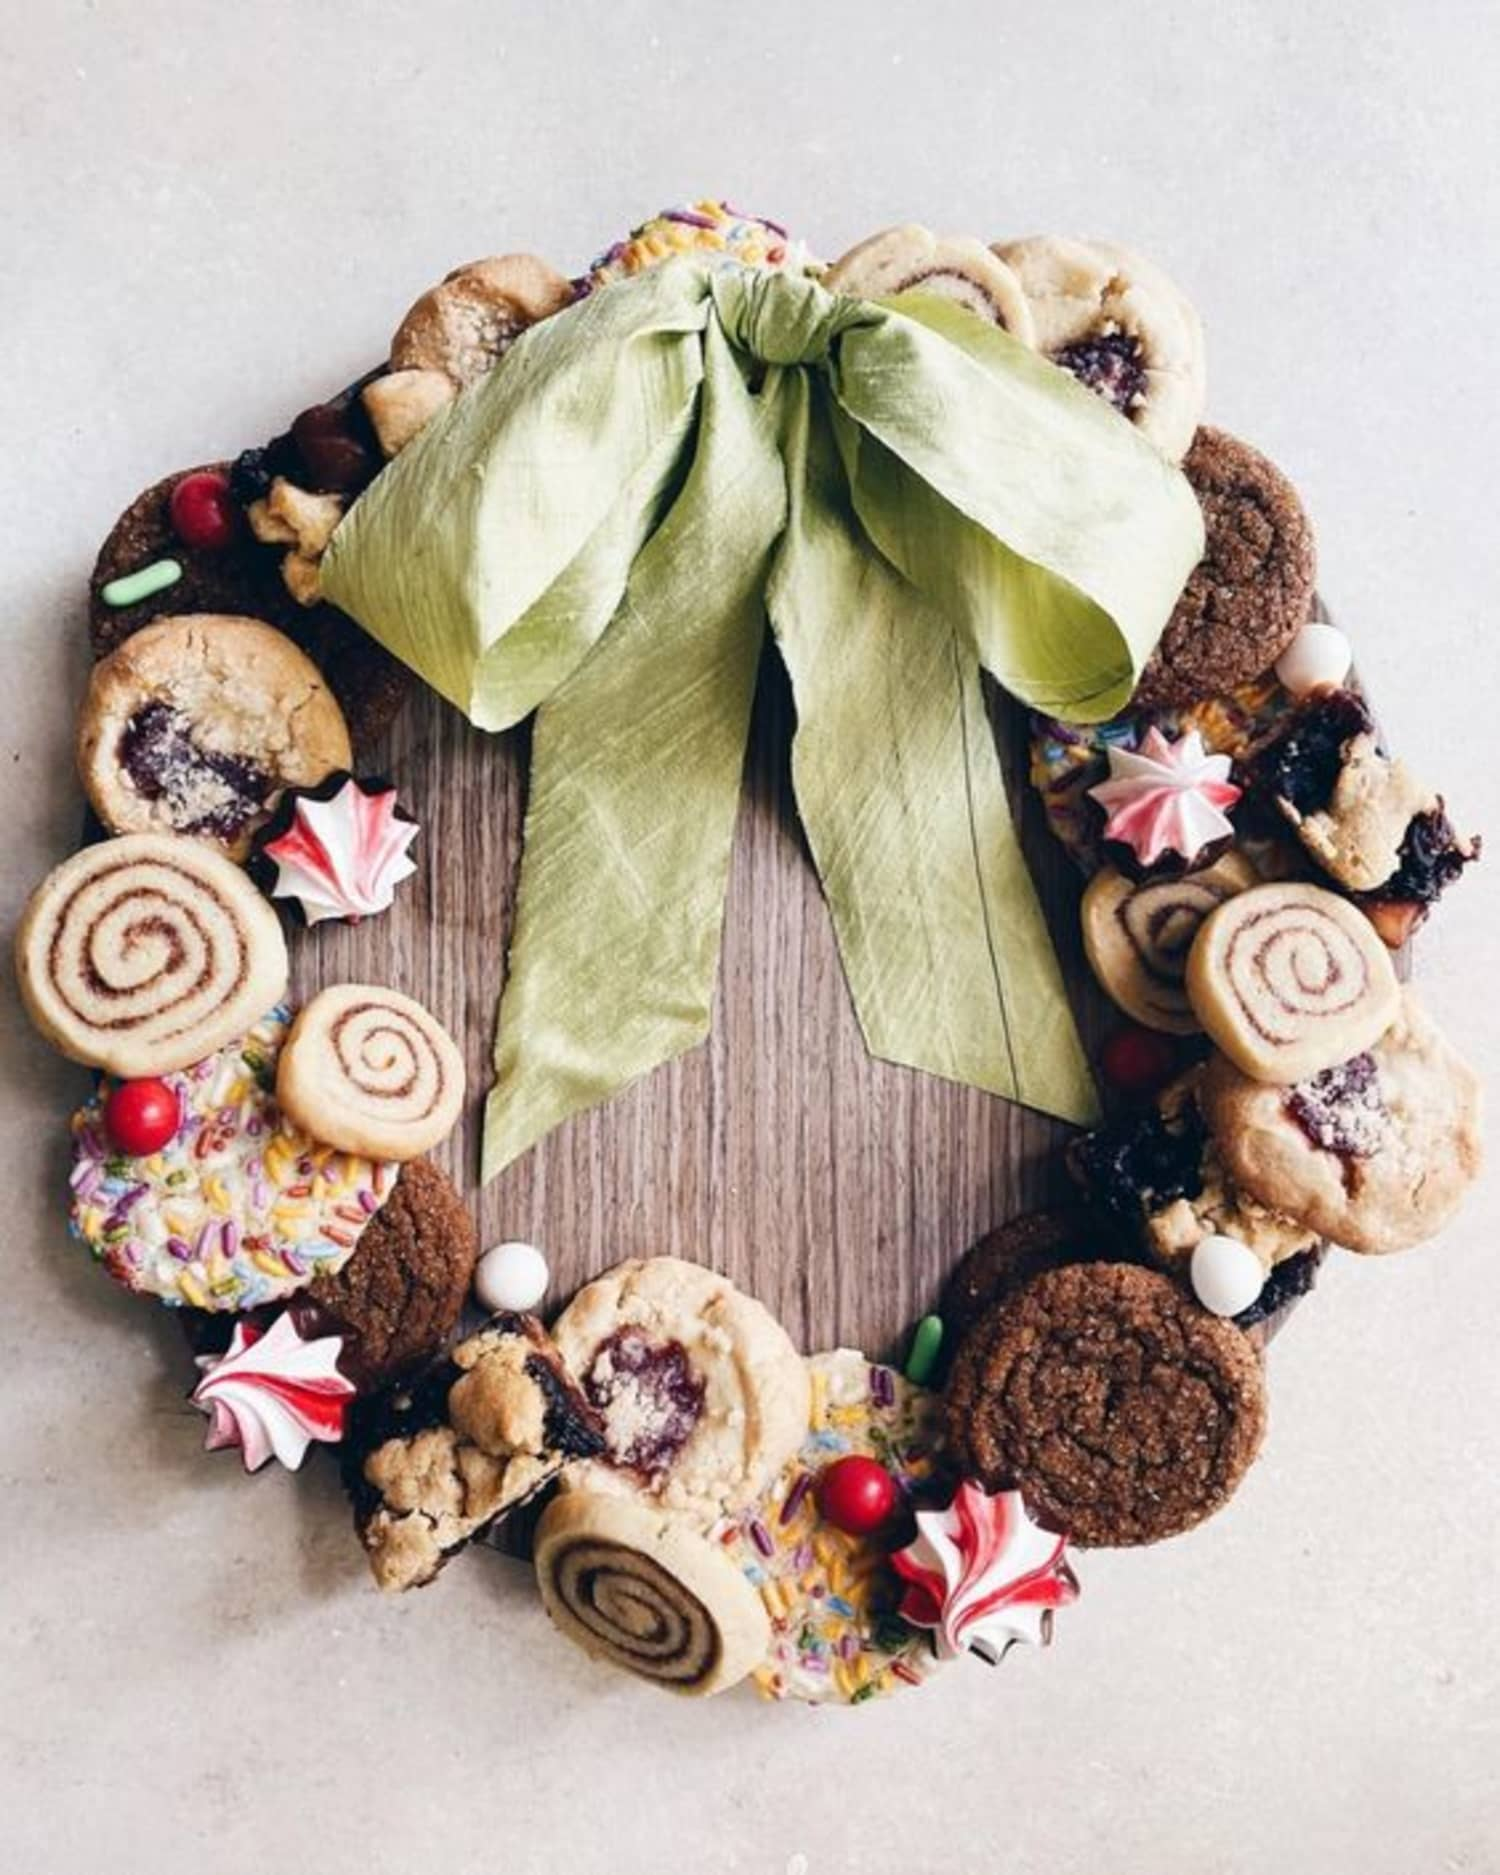 I See Your Holiday Cookie Box, and Raise You a Cookie WREATH